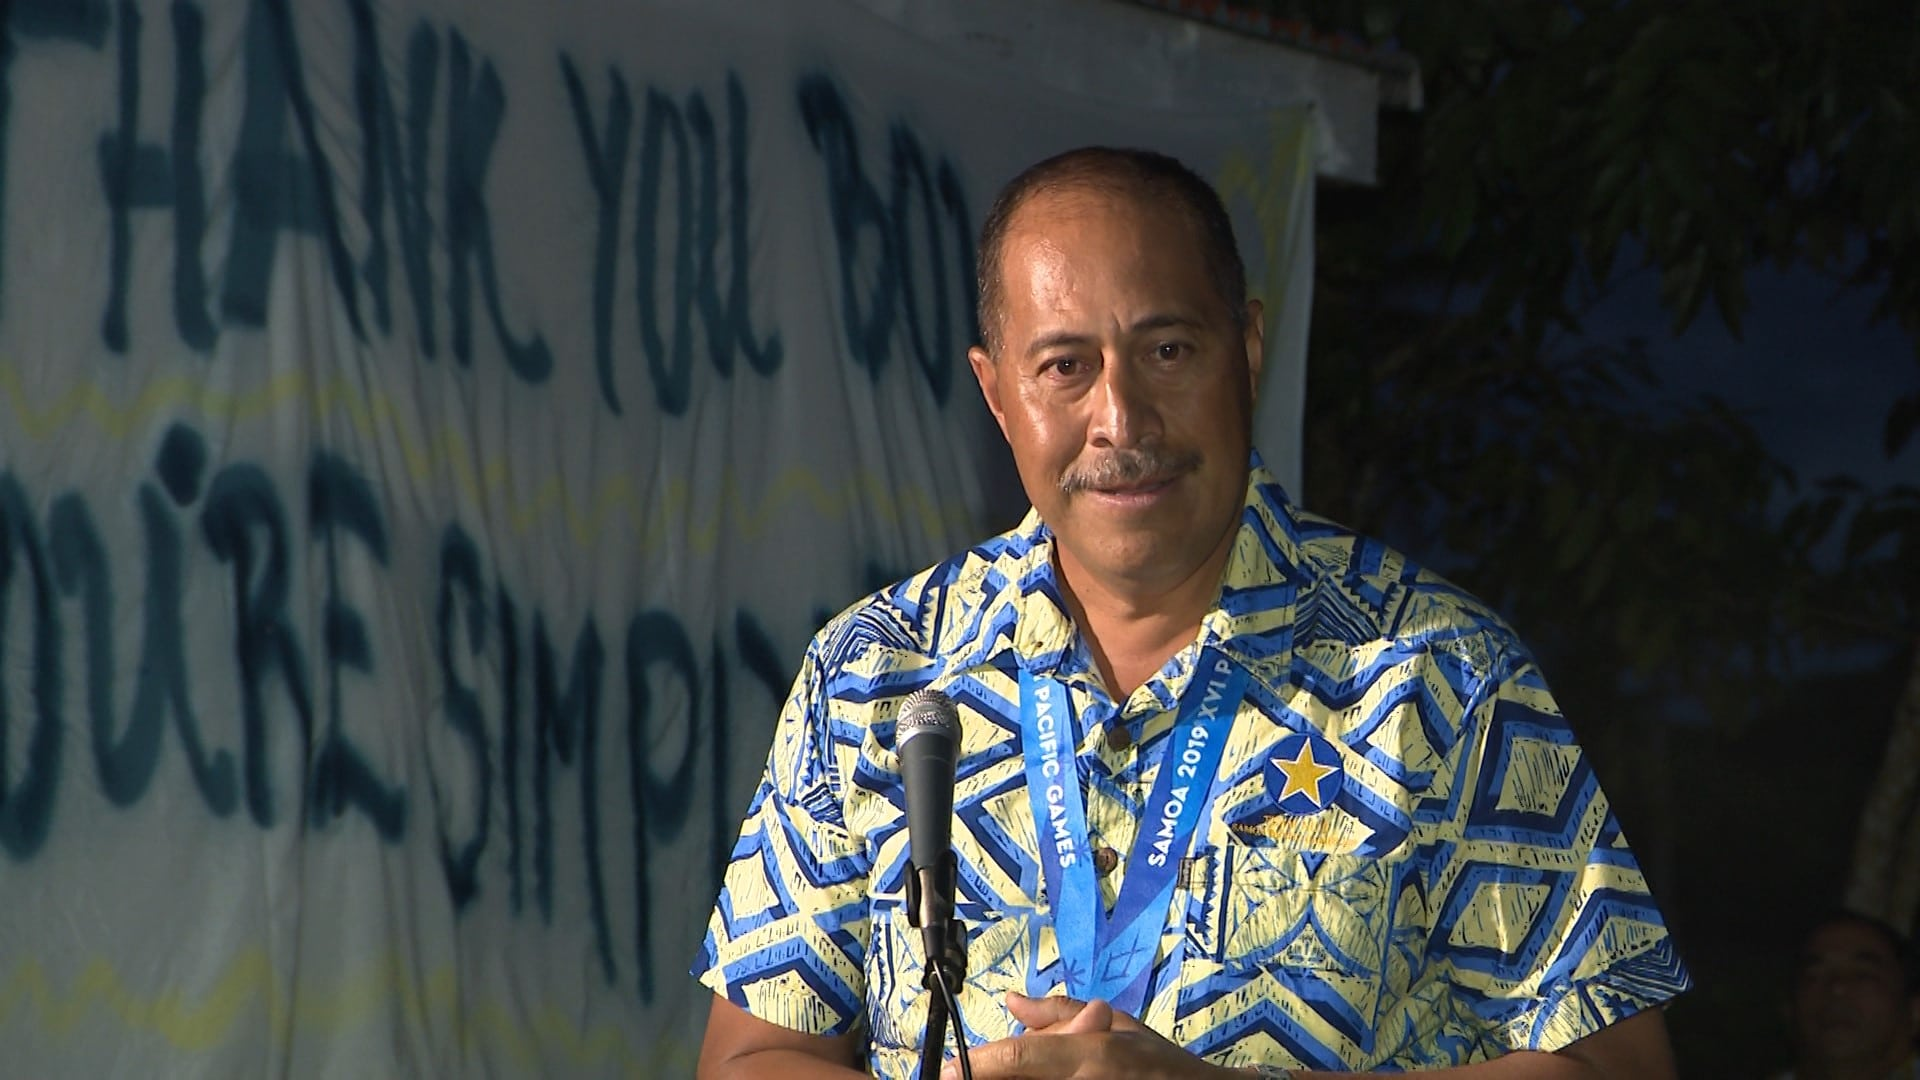 Minister for Natural Resources Dalton Tagelagi will attend the UN Climate Summit in Spain next month.The UN climate summits known as COP or Conference of the Parties are global…